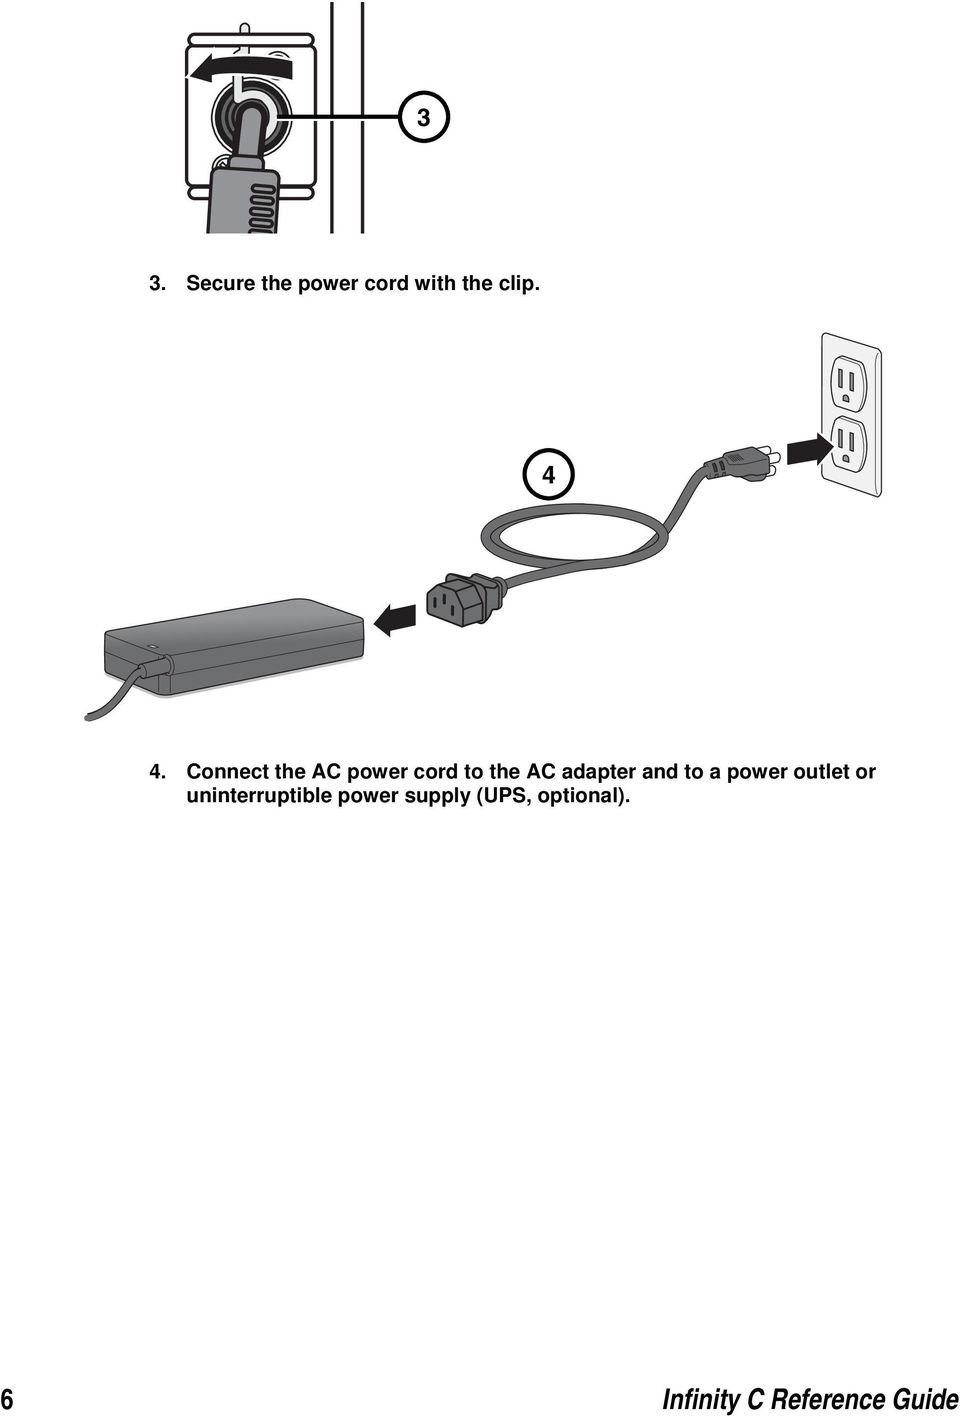 to a power outlet or uninterruptible power